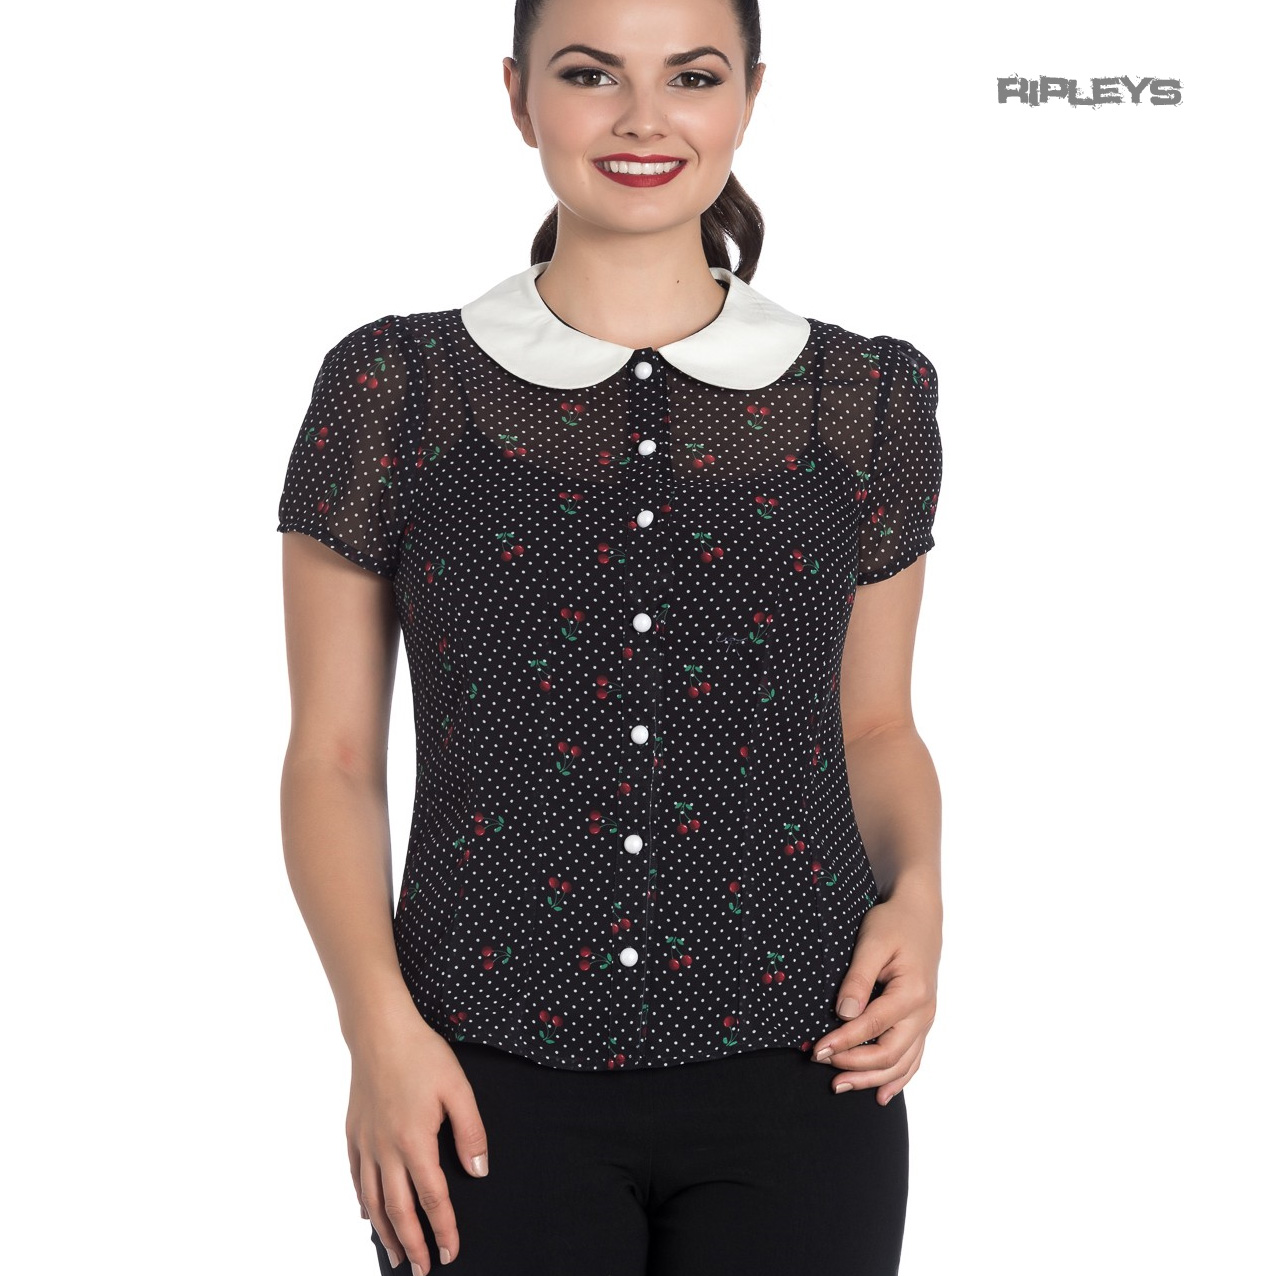 Hell-Bunny-Shirt-Top-Black-50s-Polka-Dot-SOPHIE-Blouse-Cherries-Cherry-All-Sizes thumbnail 6